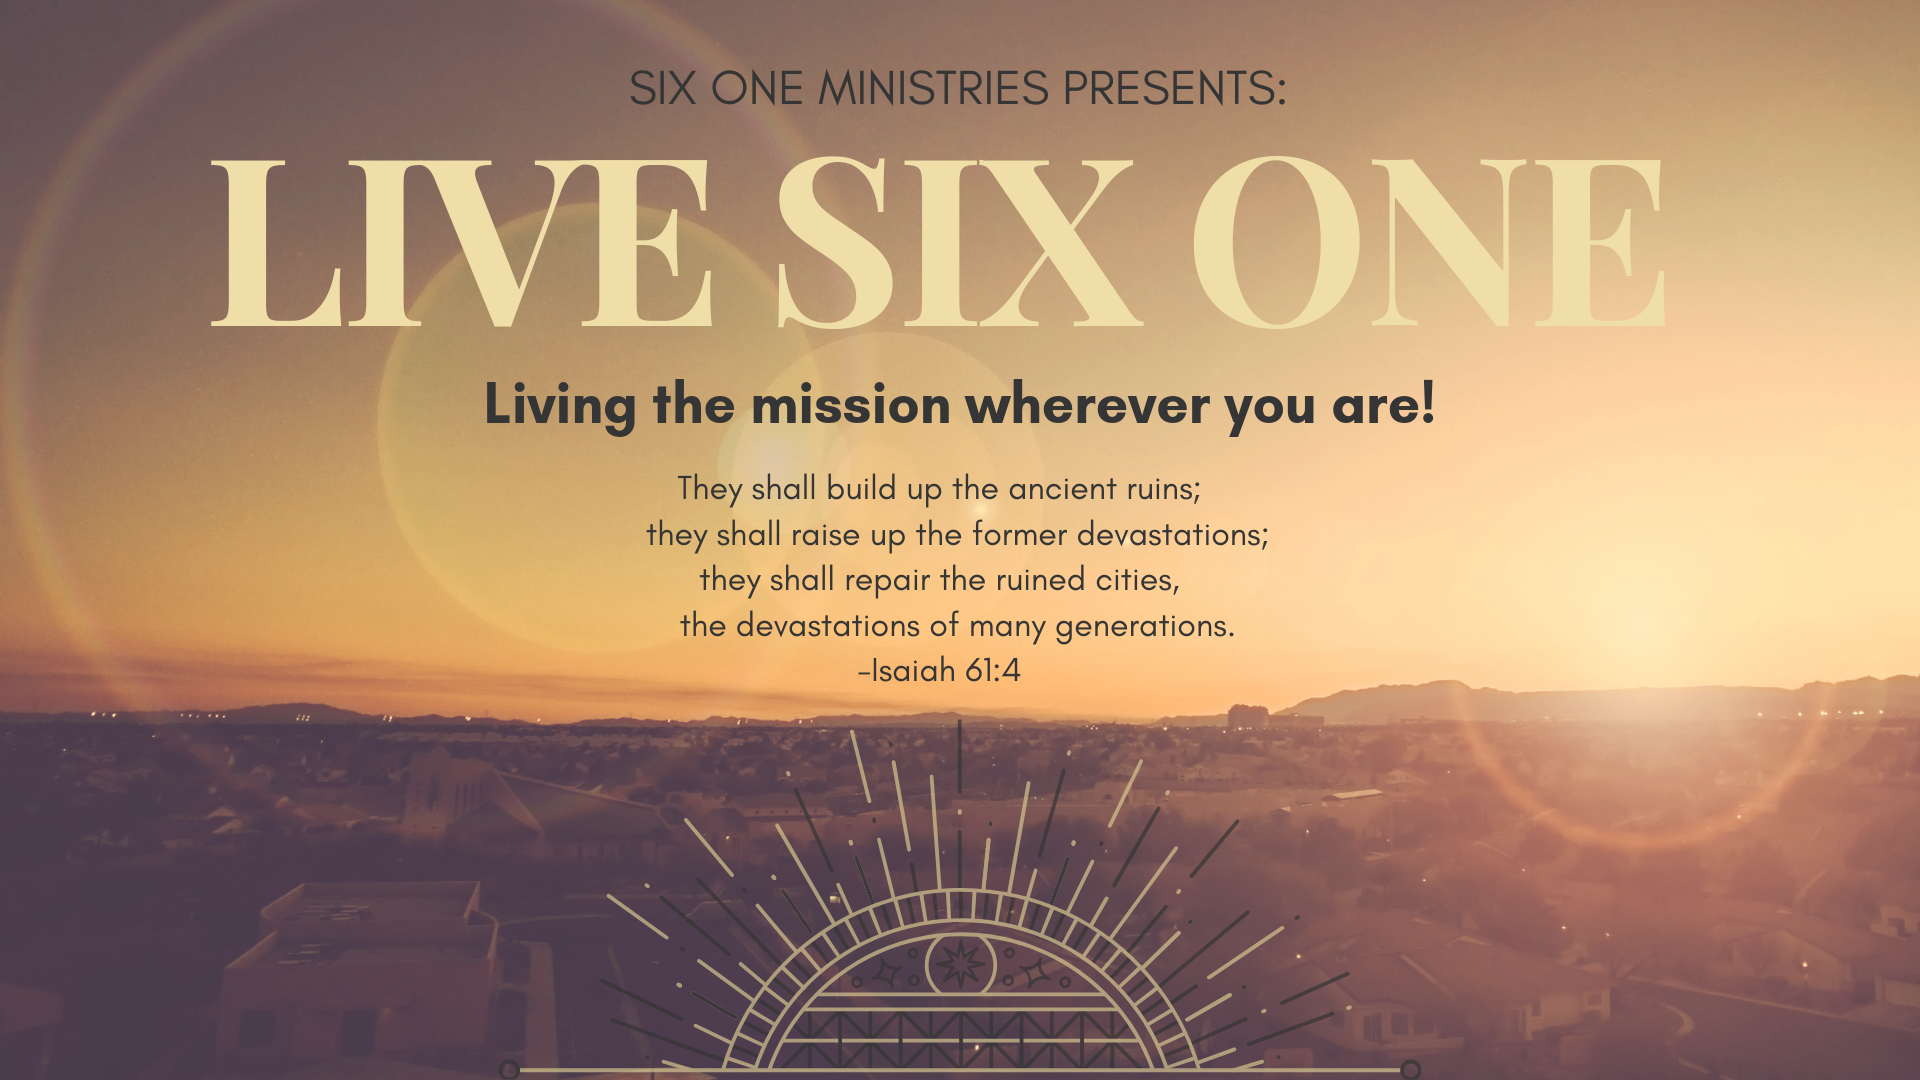 Copy of Live Six One